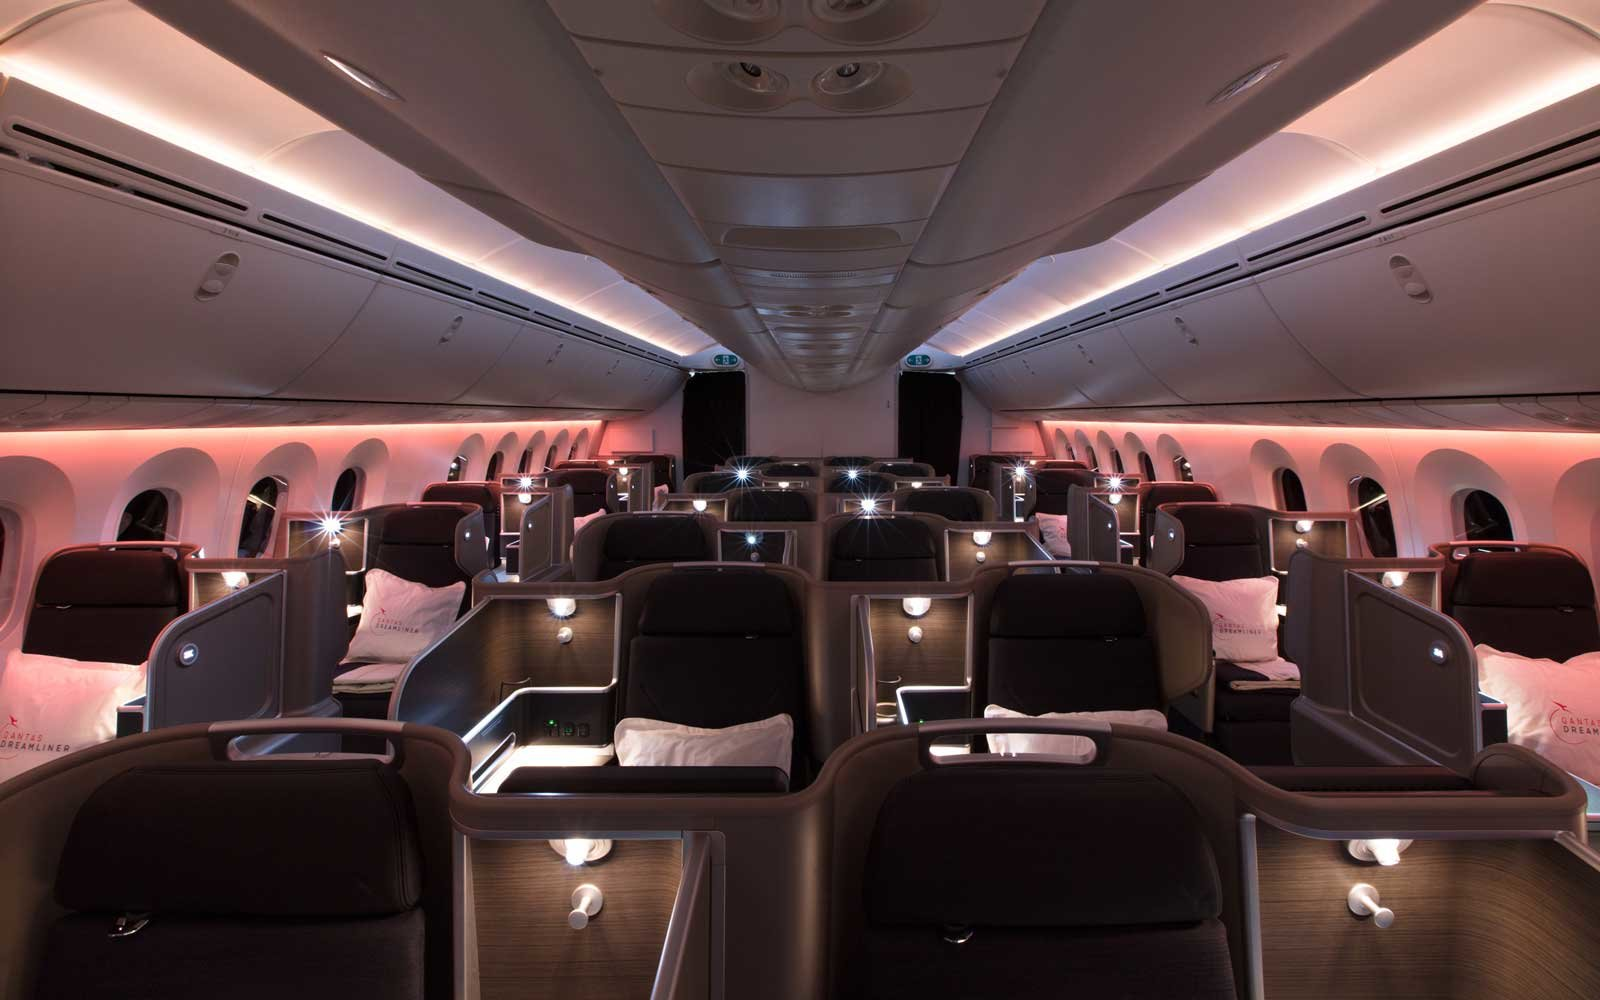 Qantas Dreamliner interior seats